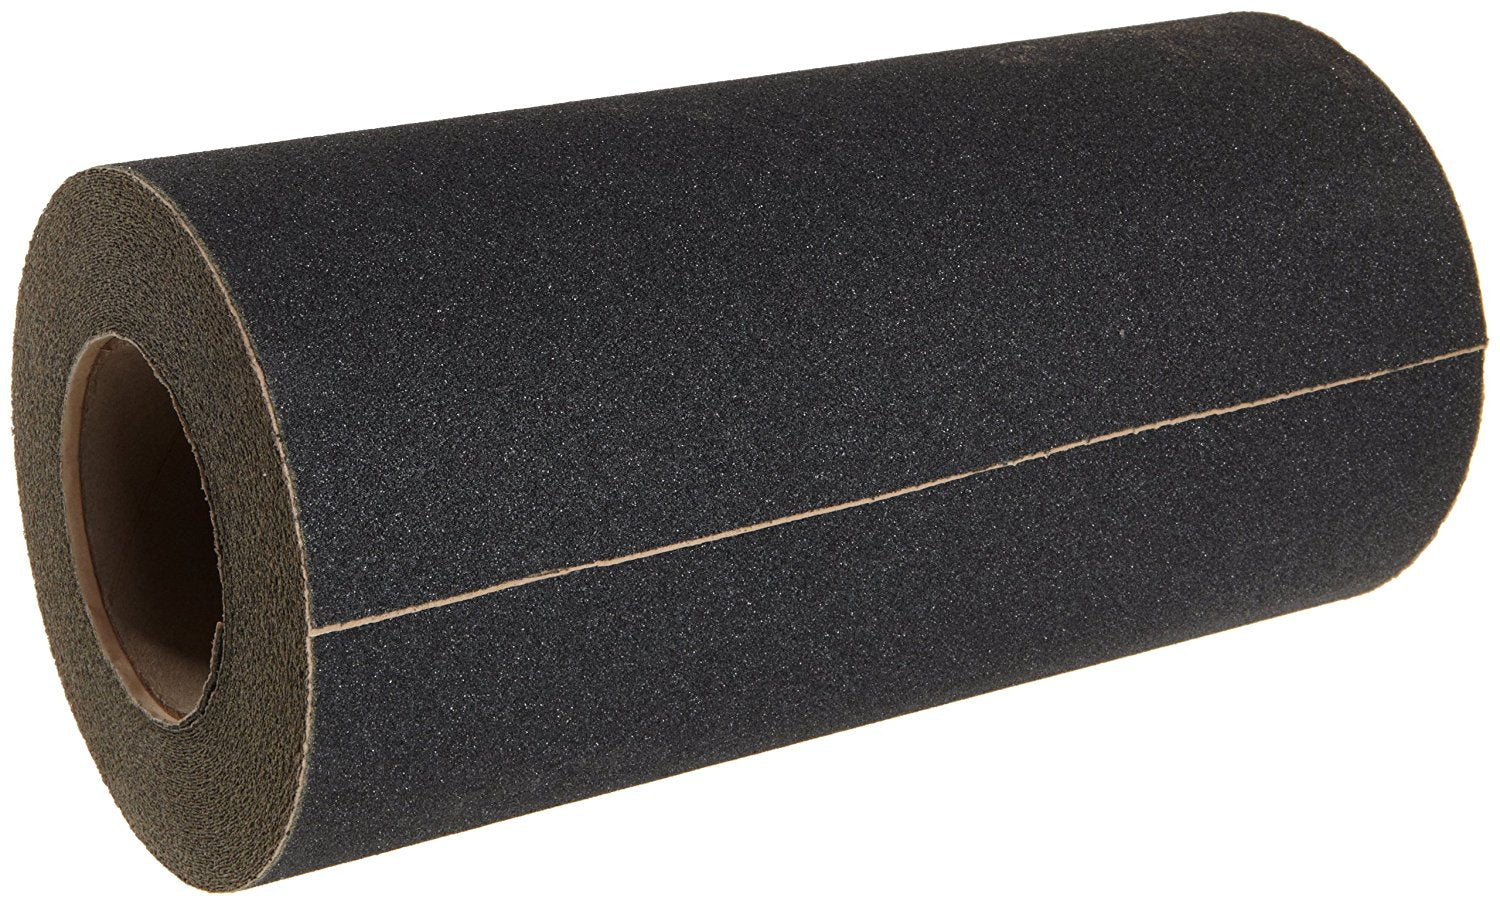 "12"" X 60' Roll BLACK Abrasive Tape"